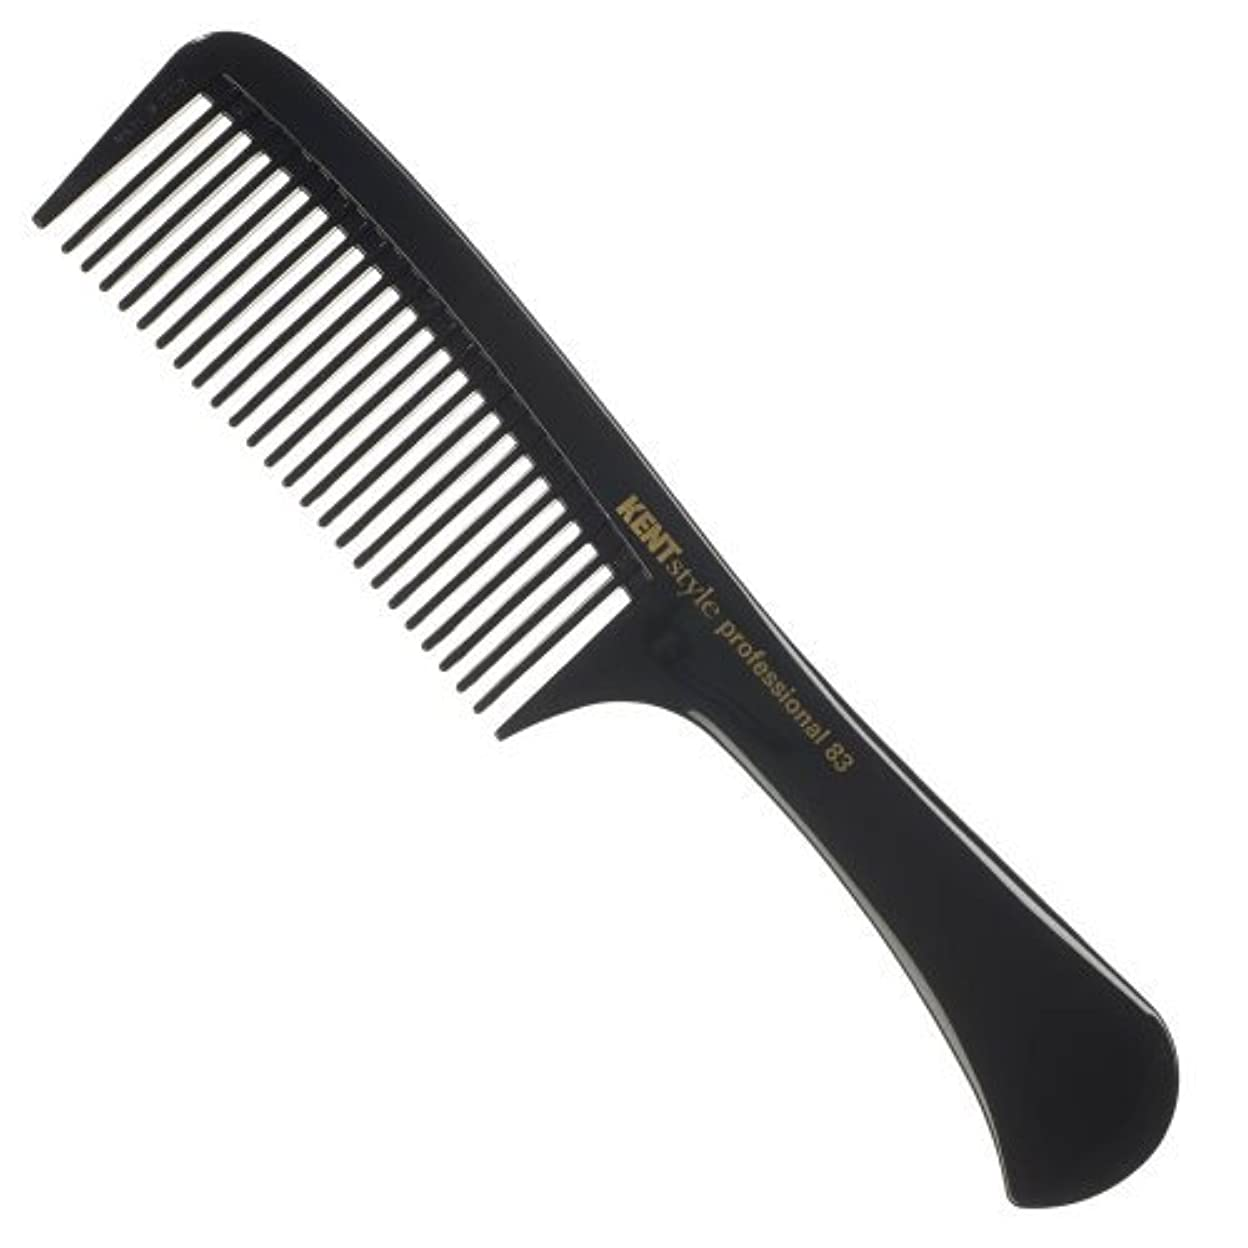 店員草本当にKent Style Professional Combs (Black) - Hard Rubber, Anti-static, Unbreakable & Heat Resistant - Salon & Barber...